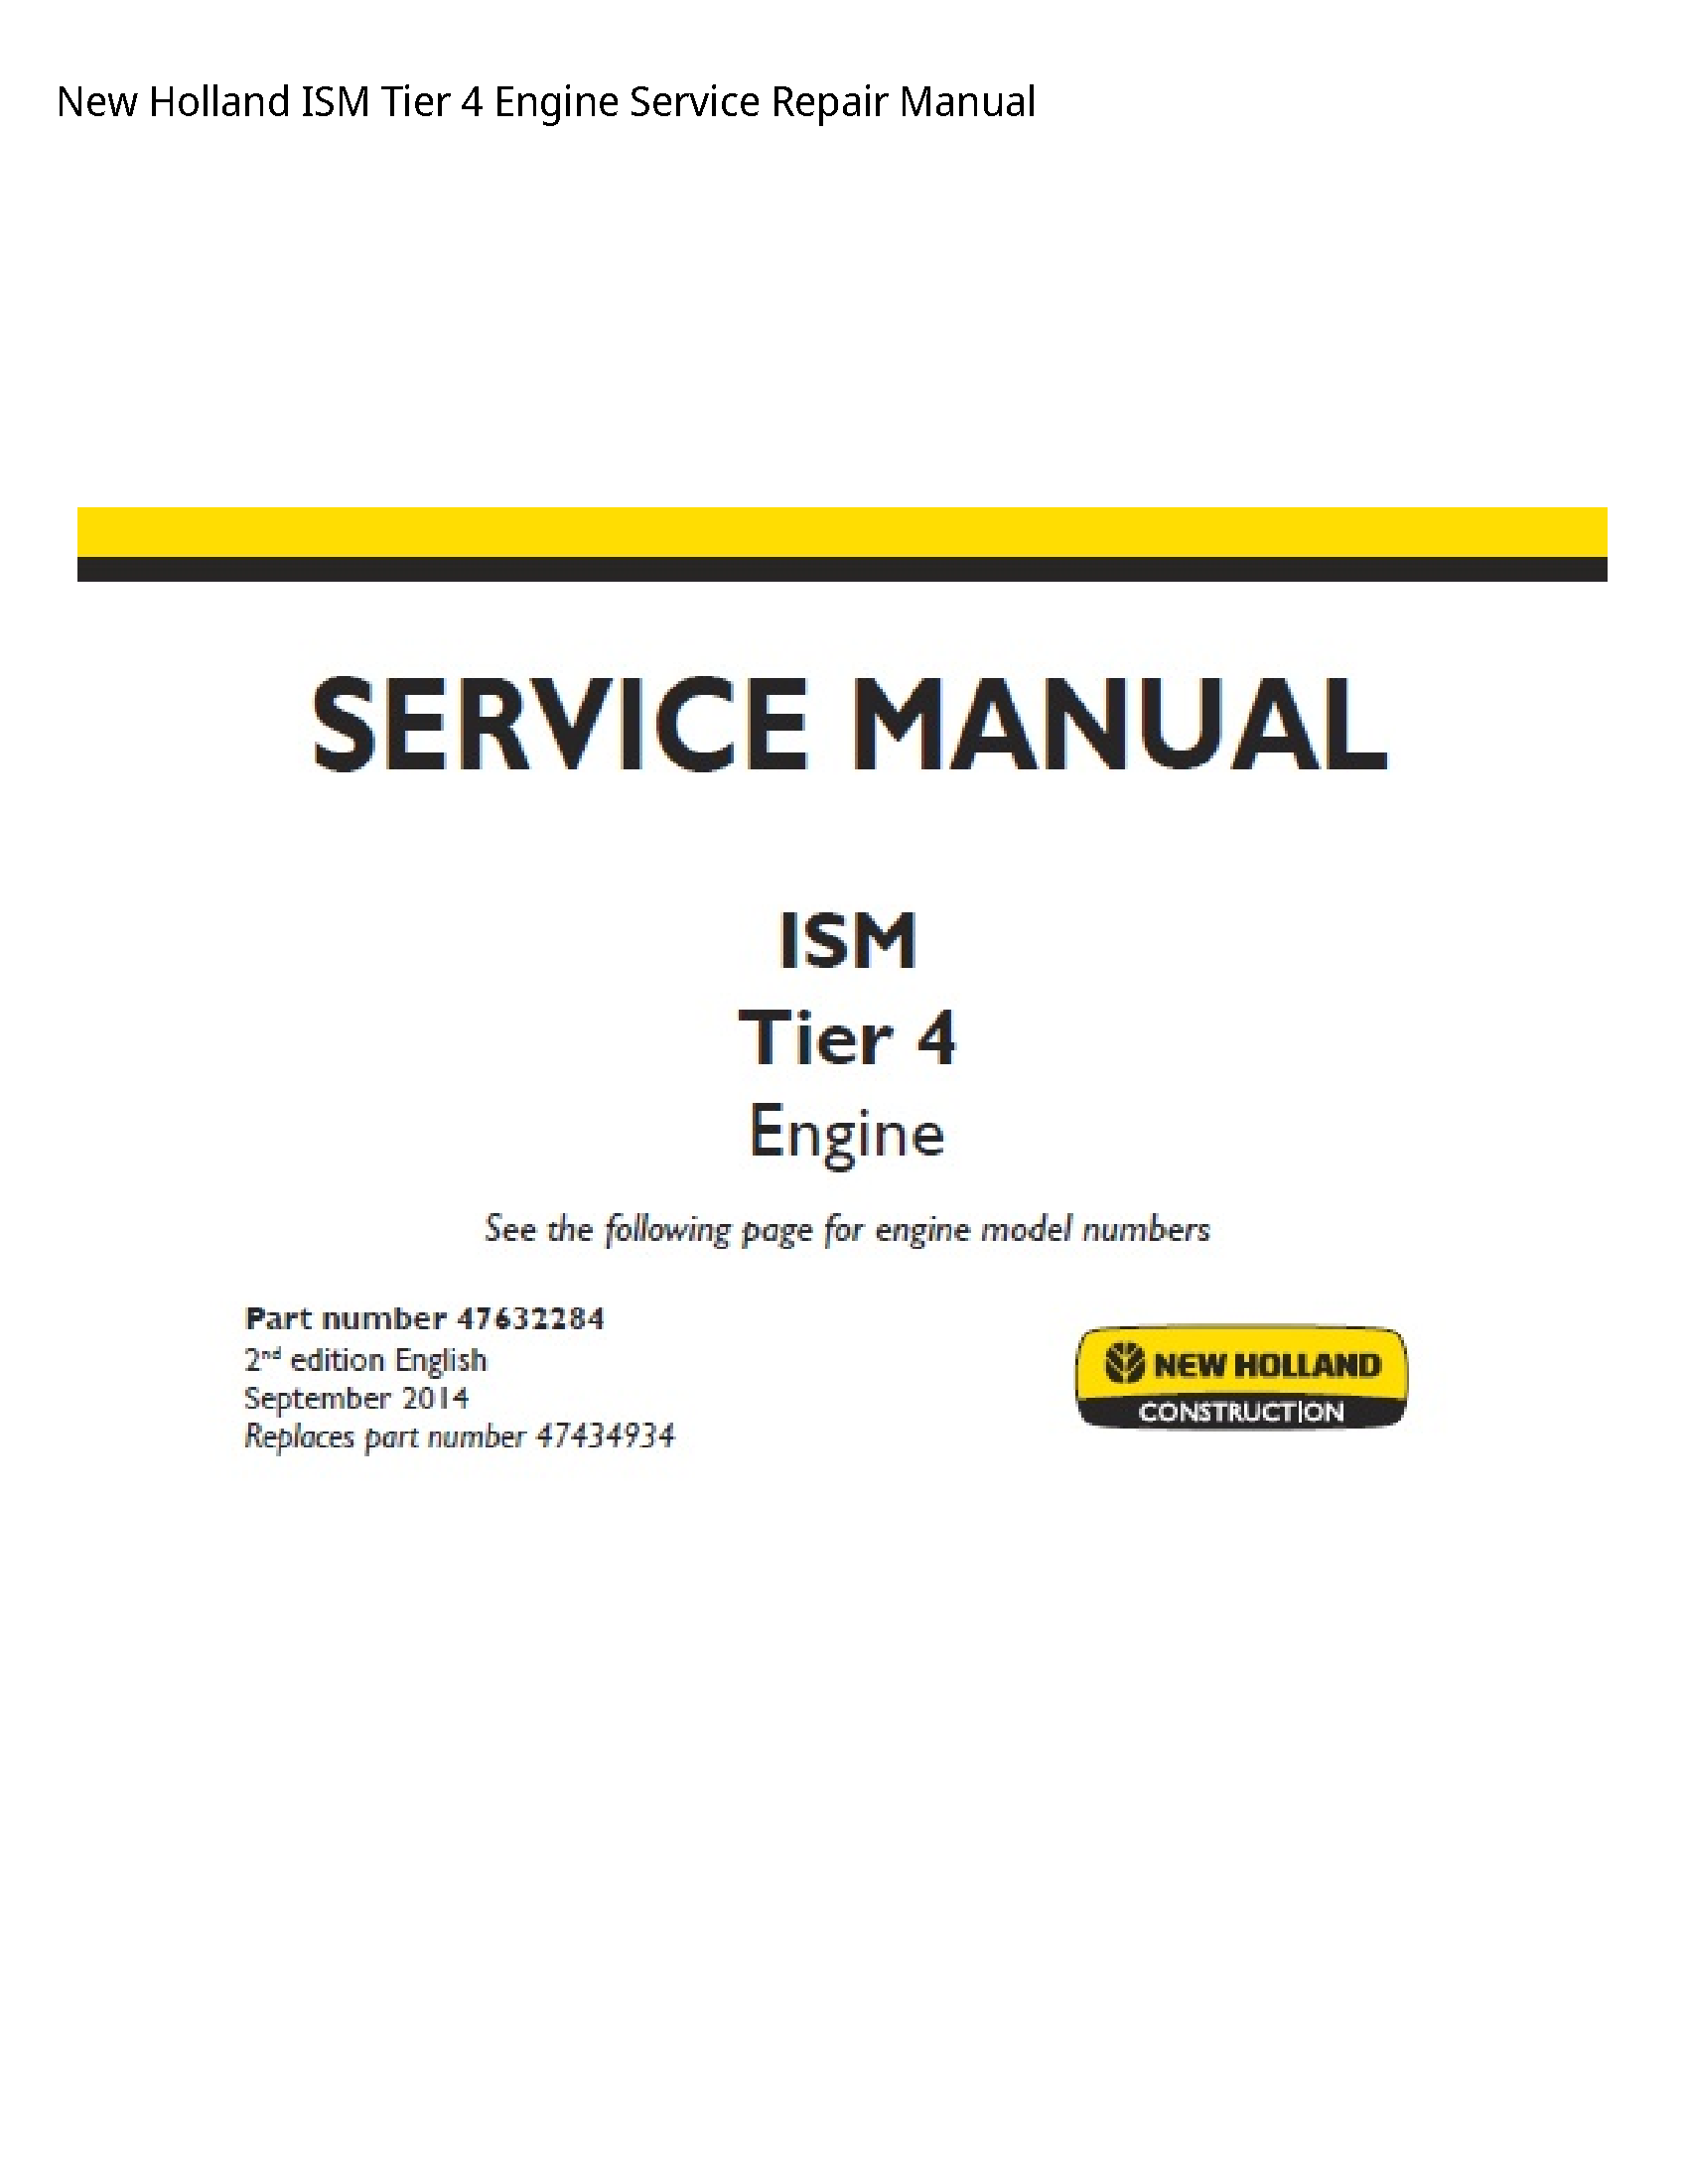 New Holland 4 ISM Tier Engine manual